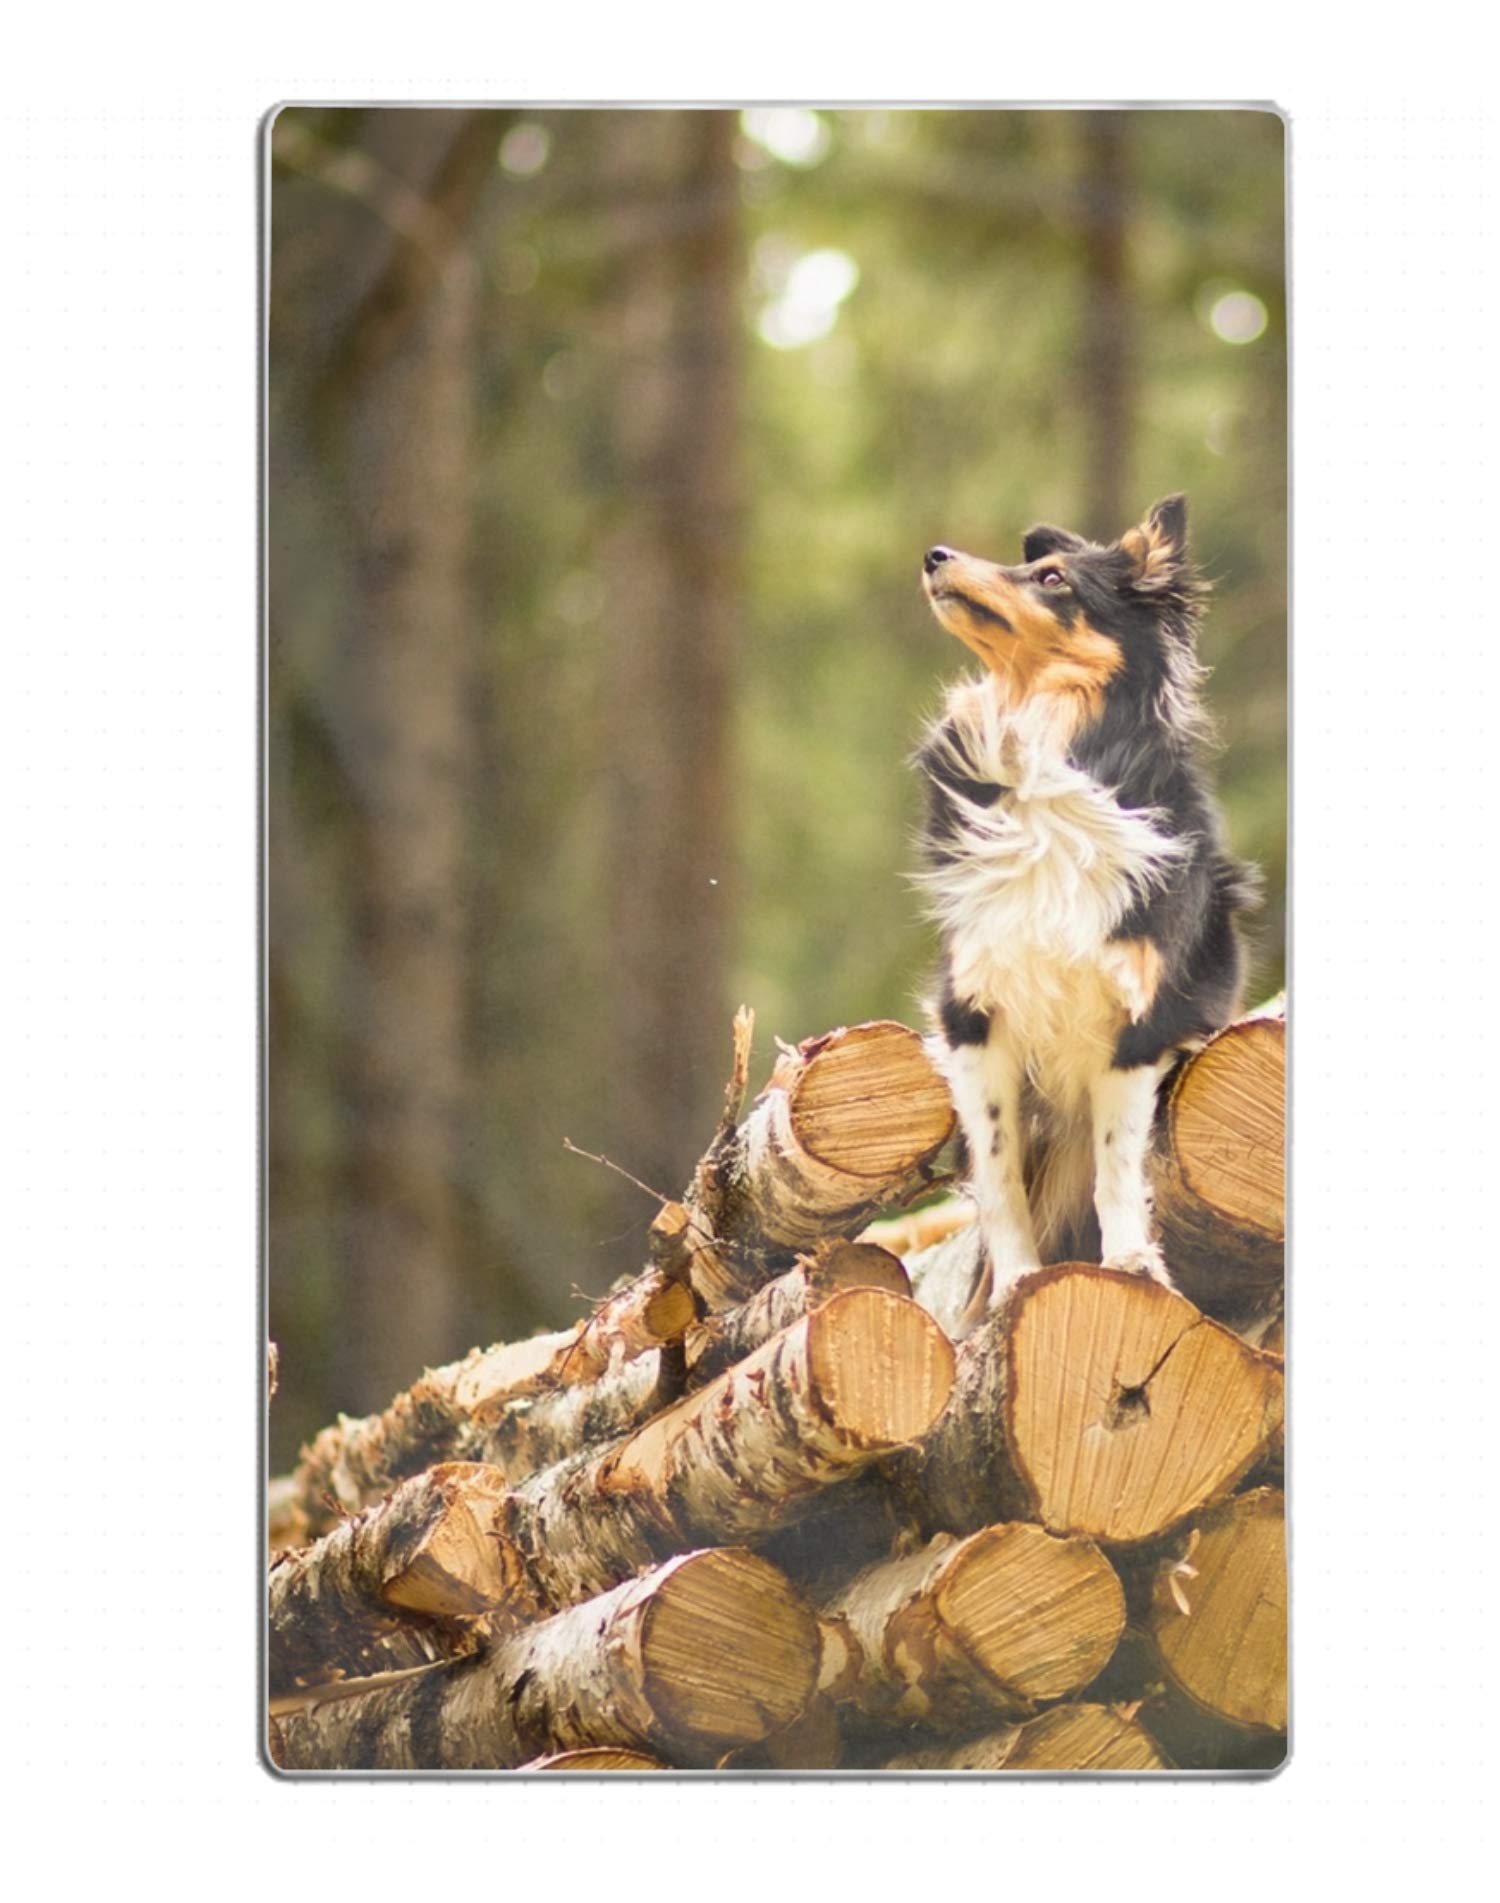 Animal Dog Wood Log Beach Towels 31.5x51.2 inches with Extra Thick,Soft,Water Absorbent Beach Throw, Yoga Mat